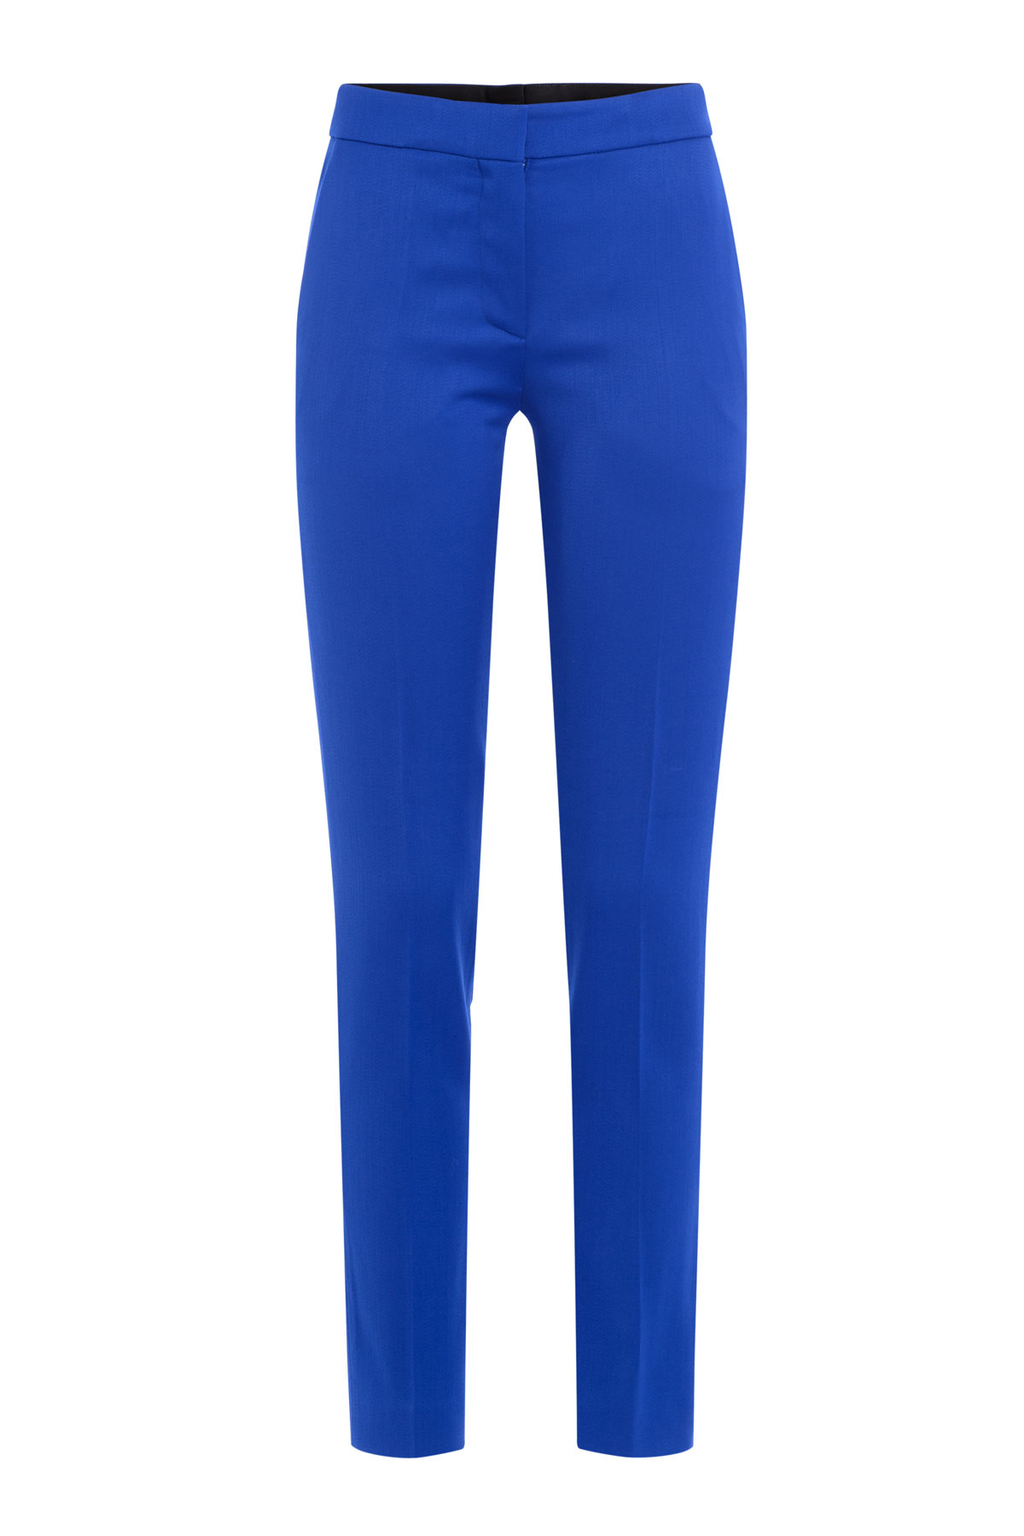 Virgin Wool Pants - length: standard; pattern: plain; waist: mid/regular rise; predominant colour: royal blue; occasions: work; fibres: wool - 100%; hip detail: subtle/flattering hip detail; texture group: cotton feel fabrics; fit: slim leg; pattern type: fabric; style: standard; season: a/w 2016; wardrobe: highlight